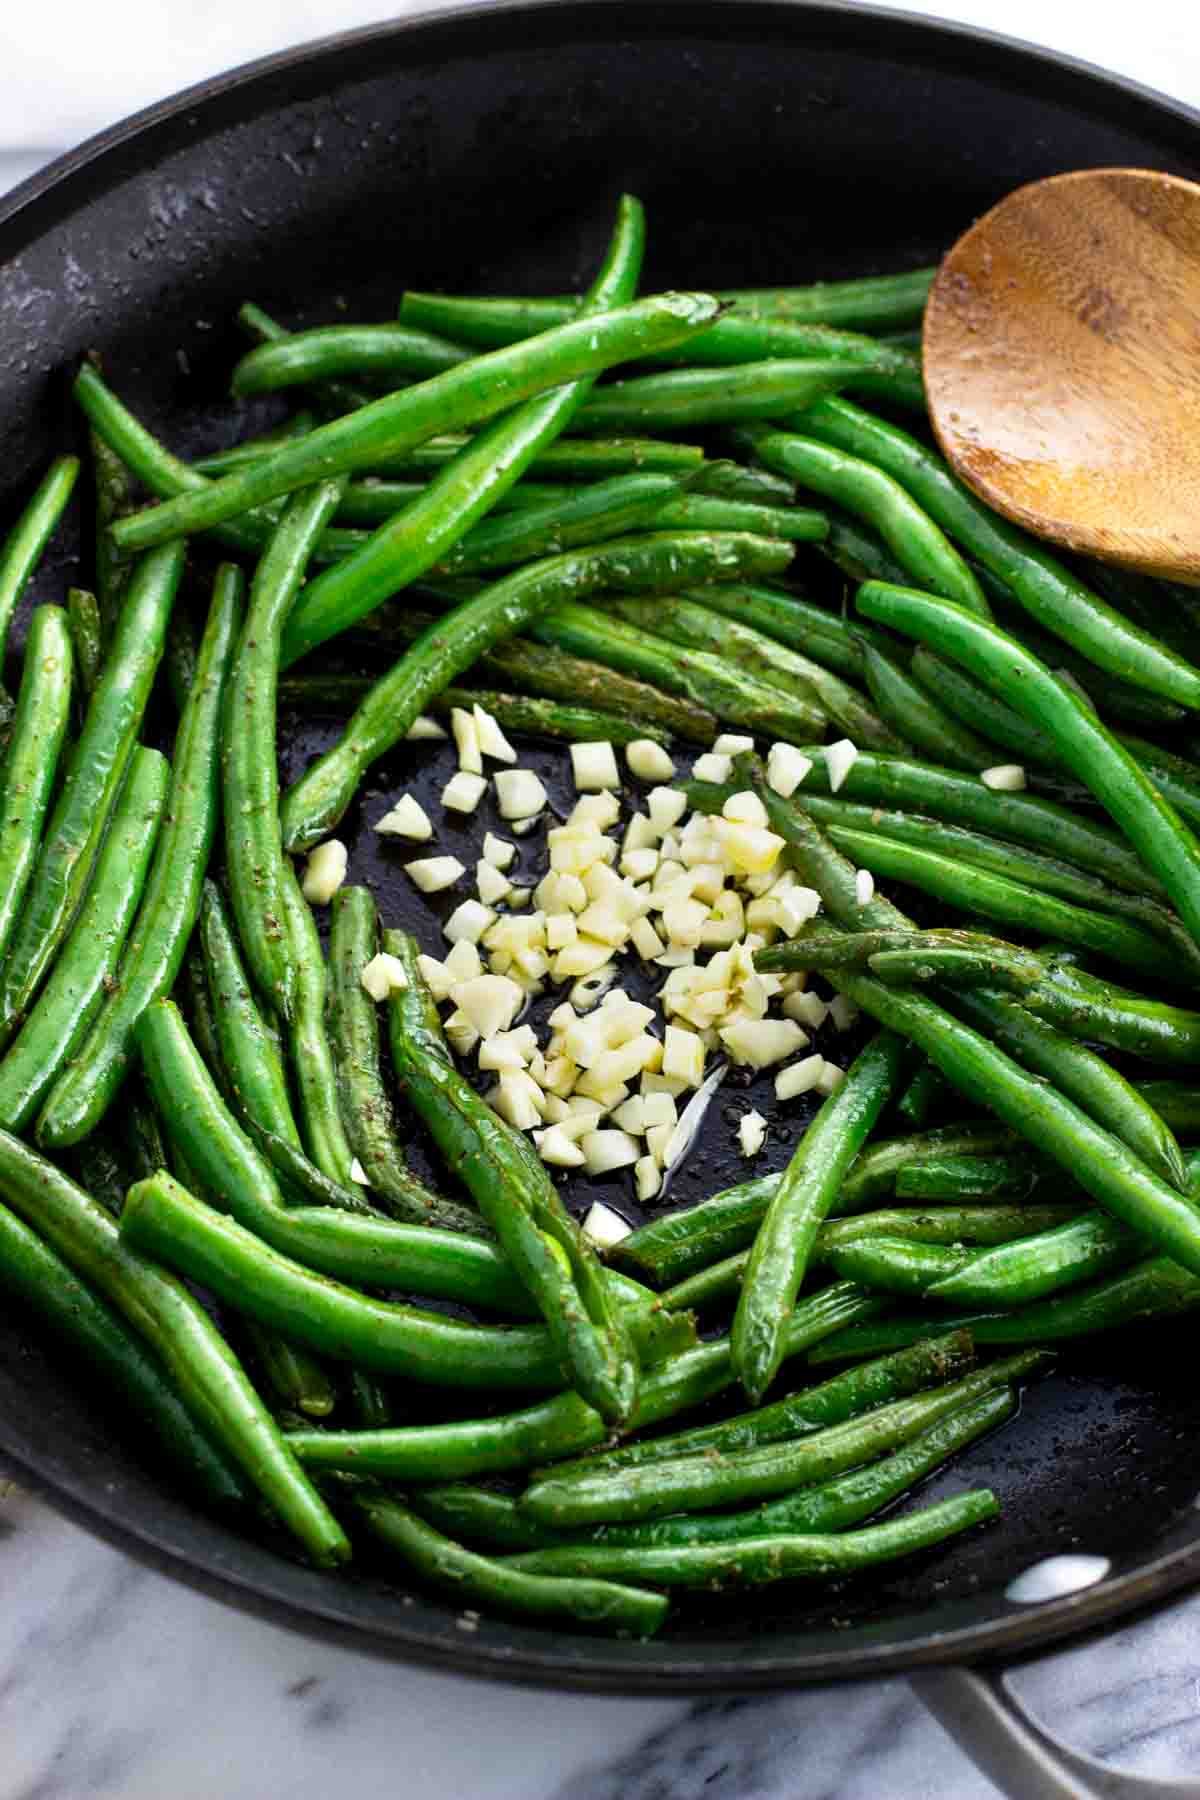 Chopped garlic surrounded by green beans in a pan.